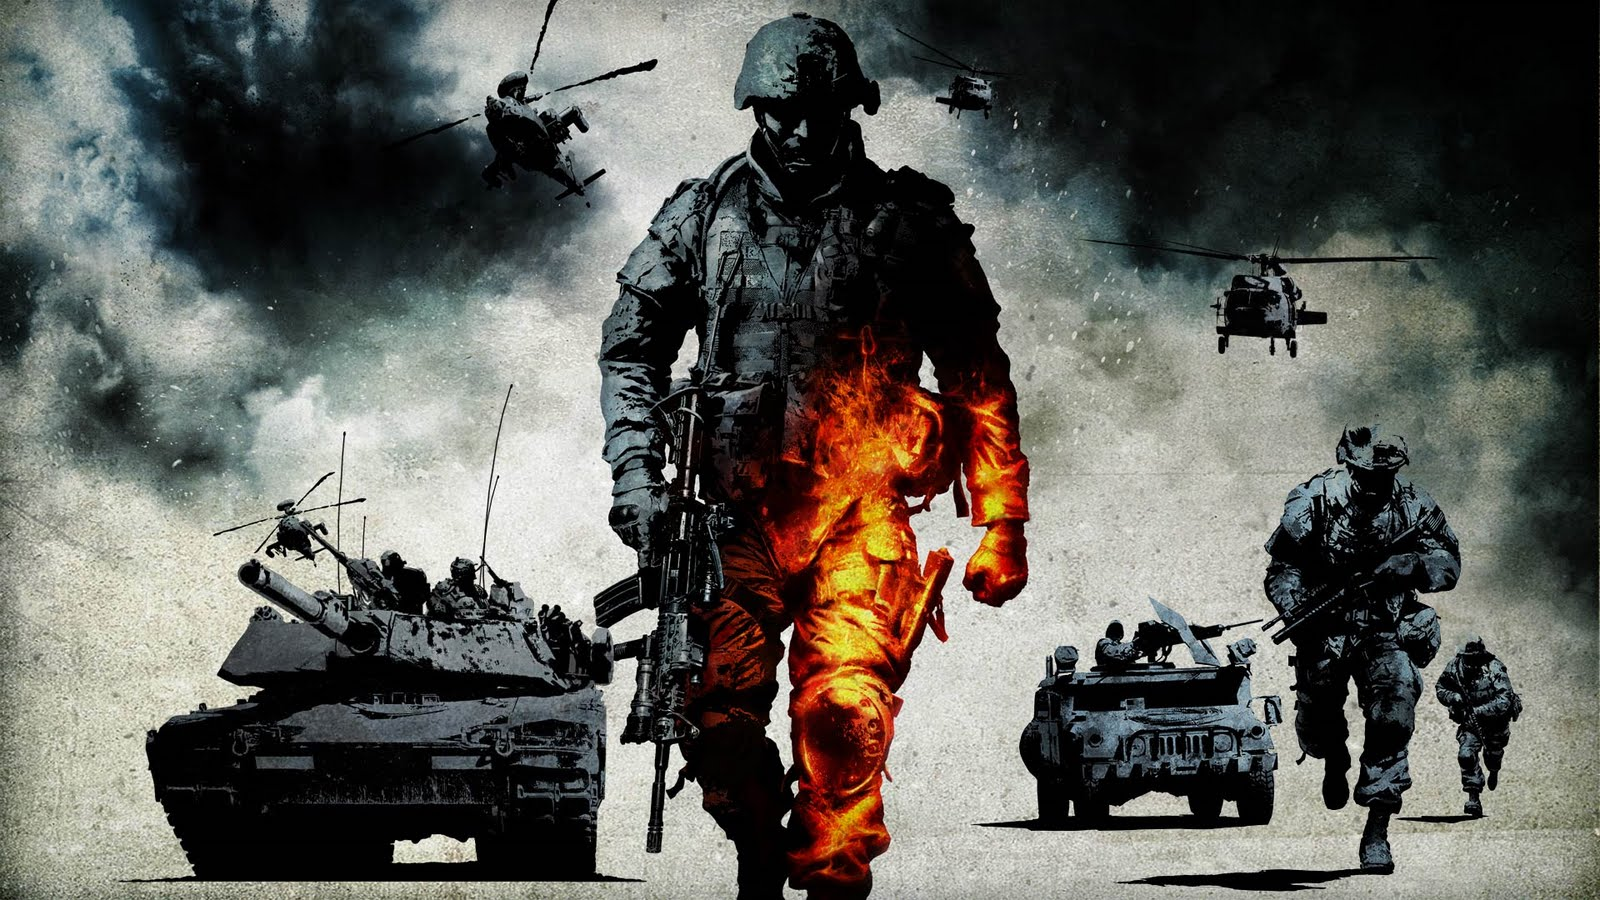 http://3.bp.blogspot.com/-IYIS8y2AJyI/Ttj9FOO1ROI/AAAAAAAAAoM/wAPg9X2SgCM/s1600/Battlefield_Bad_Company_2_HD_Wallpapers_1.jpg